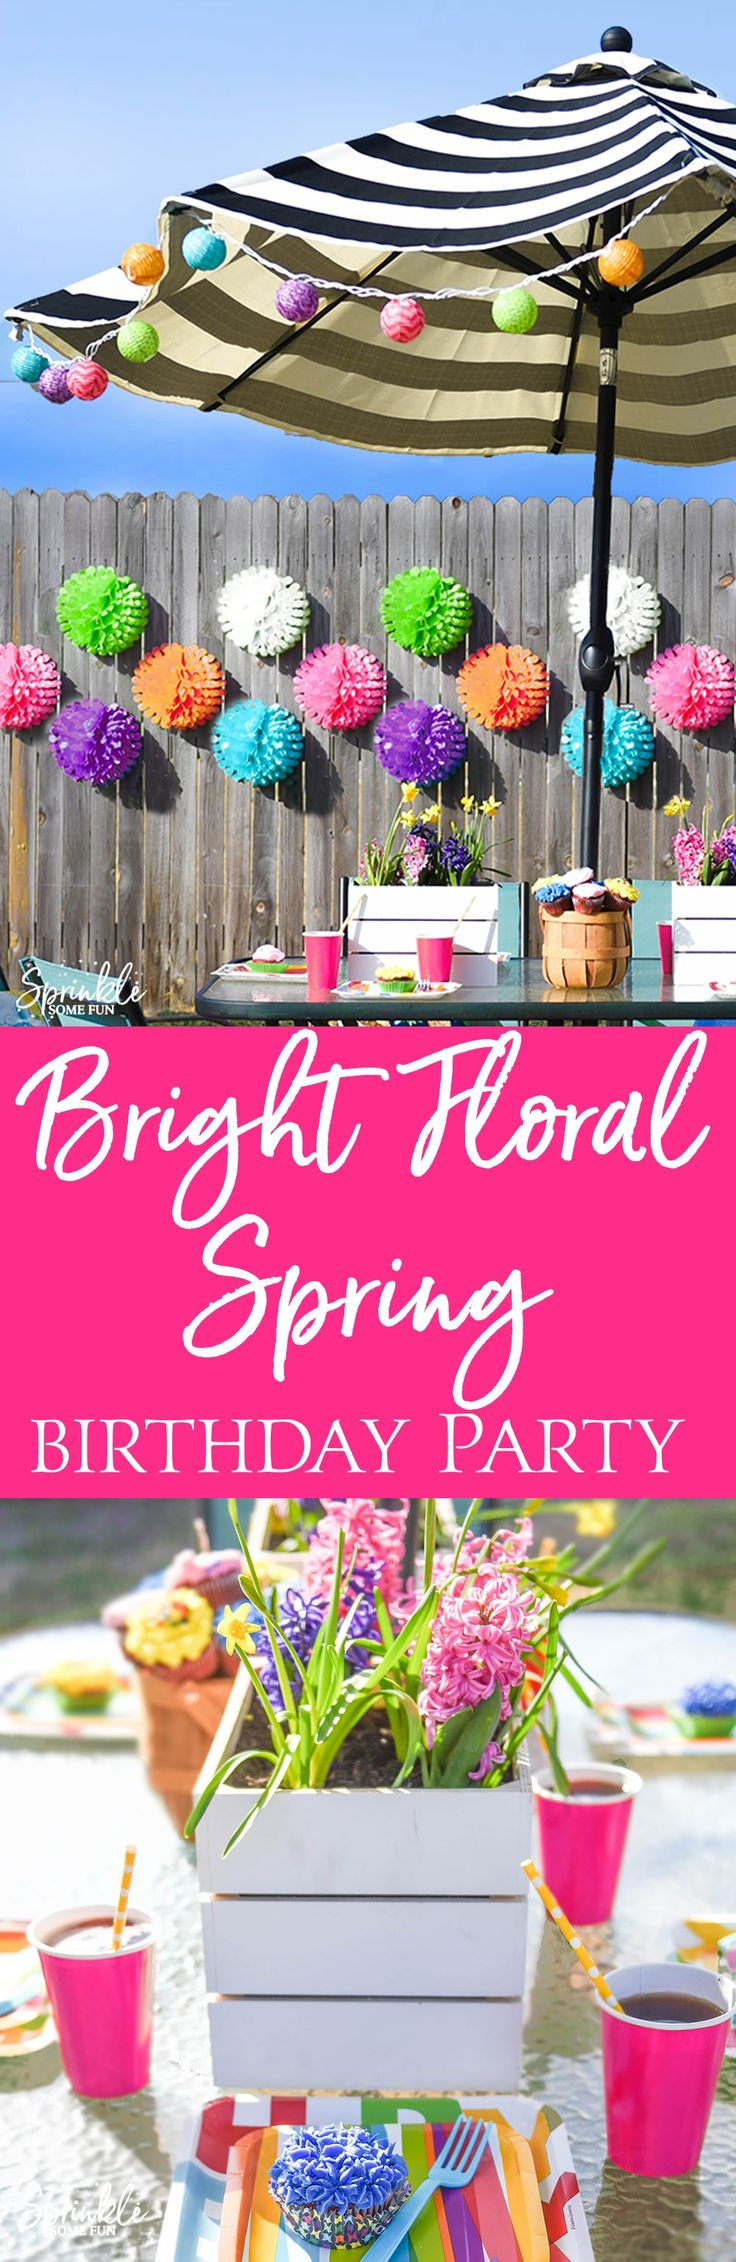 This Bright Floral Spring Birthday Party is bursting with color and floral touches!  A mix of outdoor decorations and bright party supplies is a great way to celebrate outdoors. via @sprinklesomefun